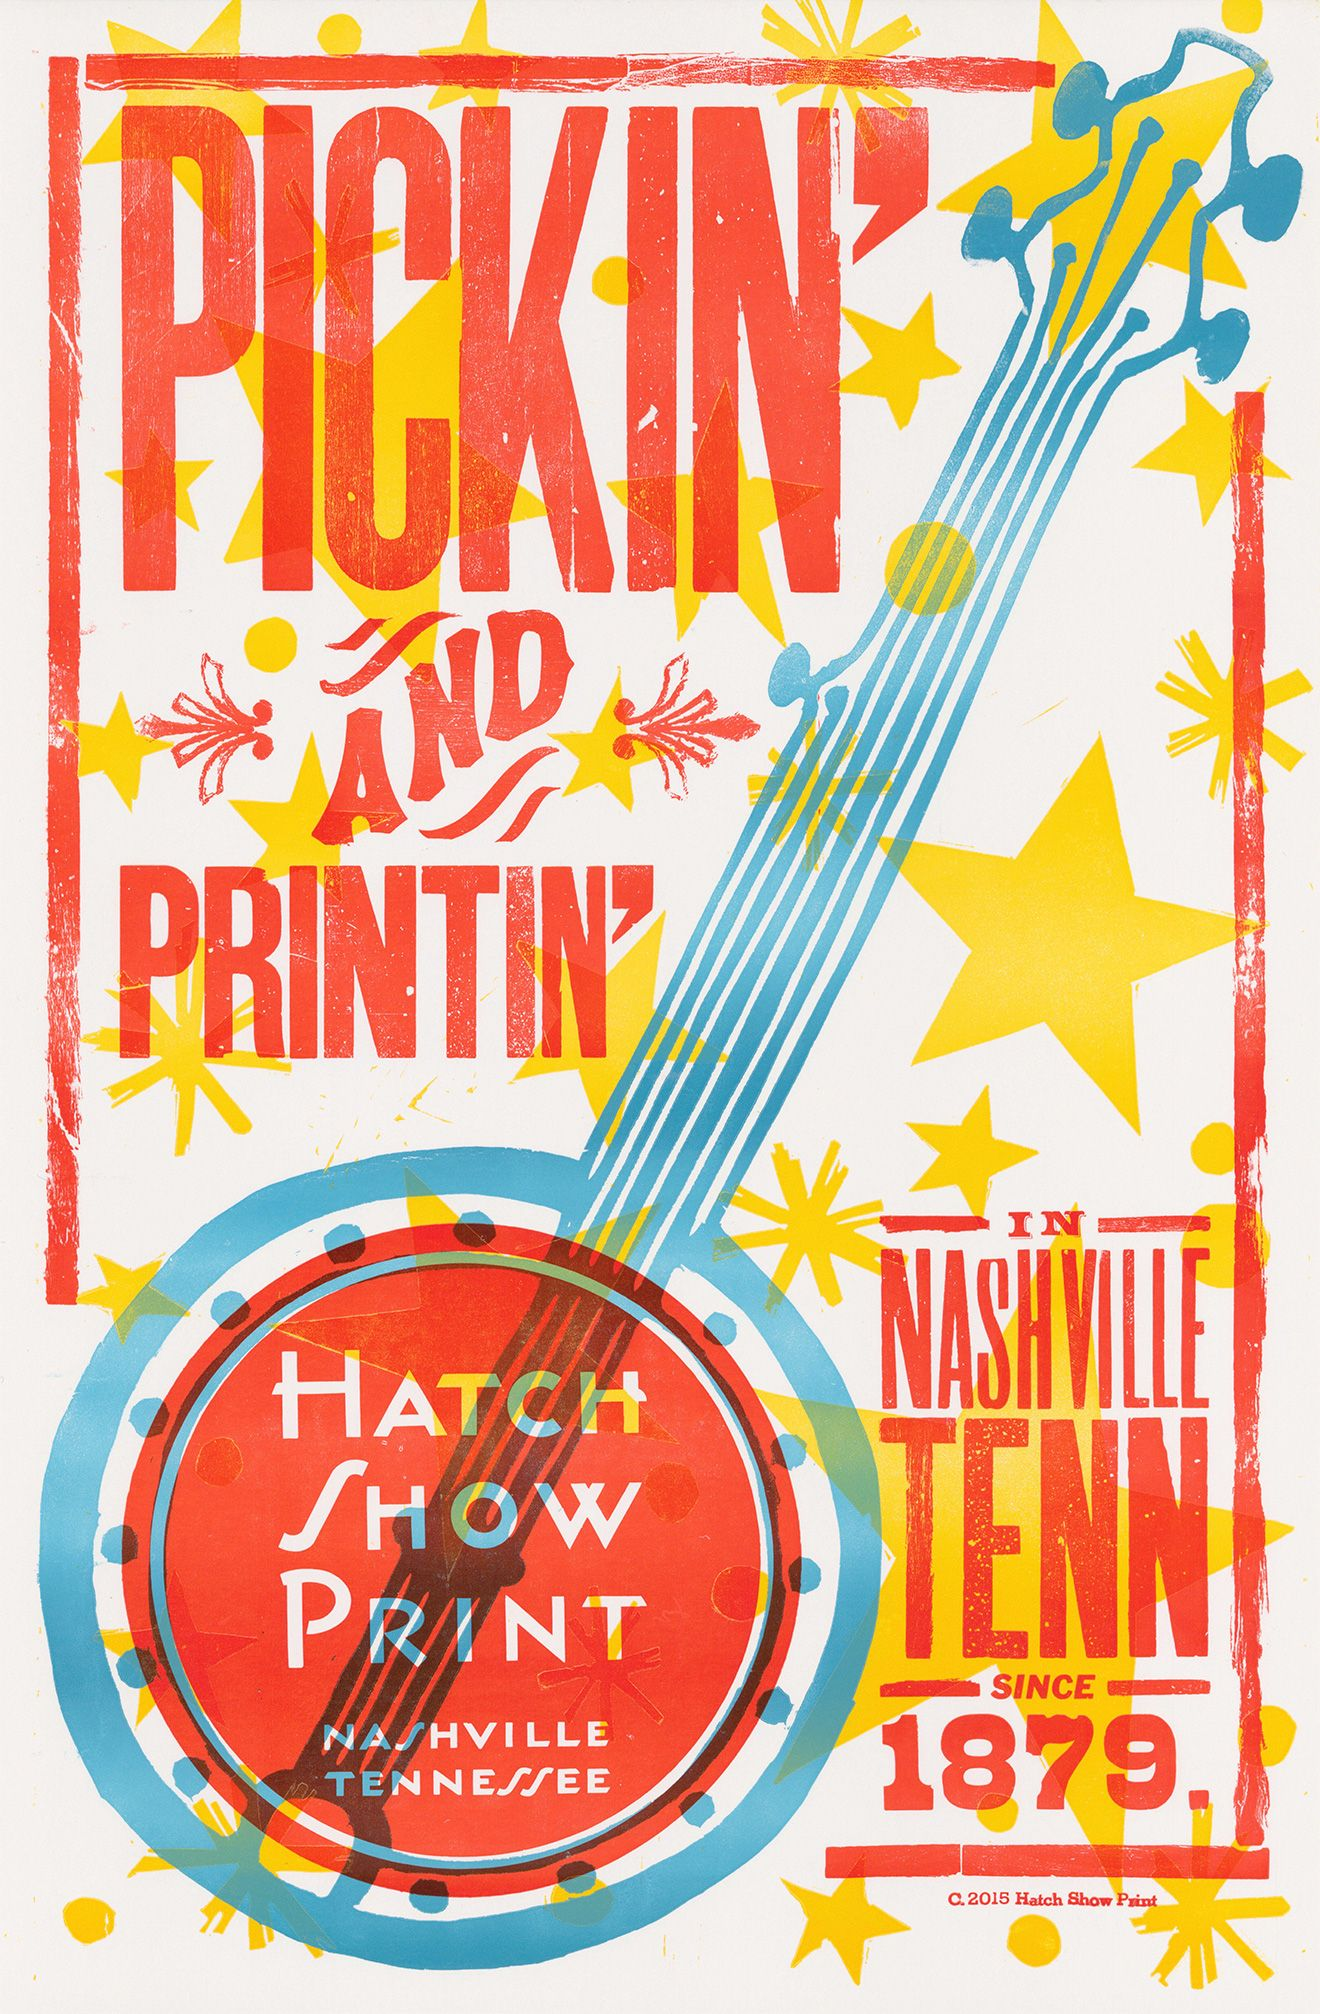 How a Small Nashville Print Shop Forever Changed the Look of ...